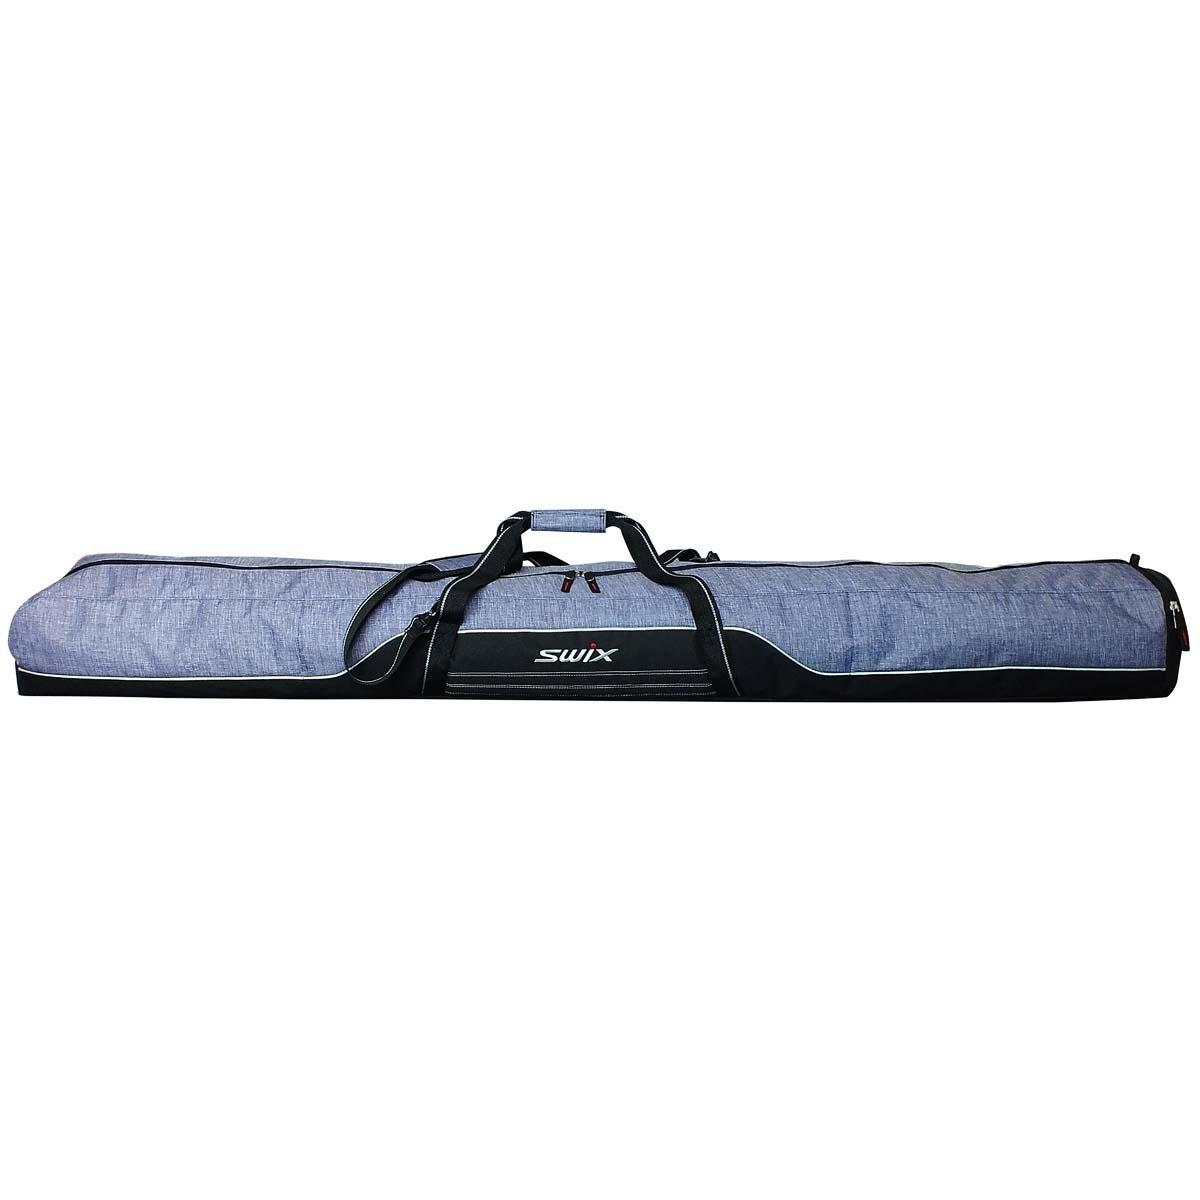 Swix Road Trip Single Ski Bag